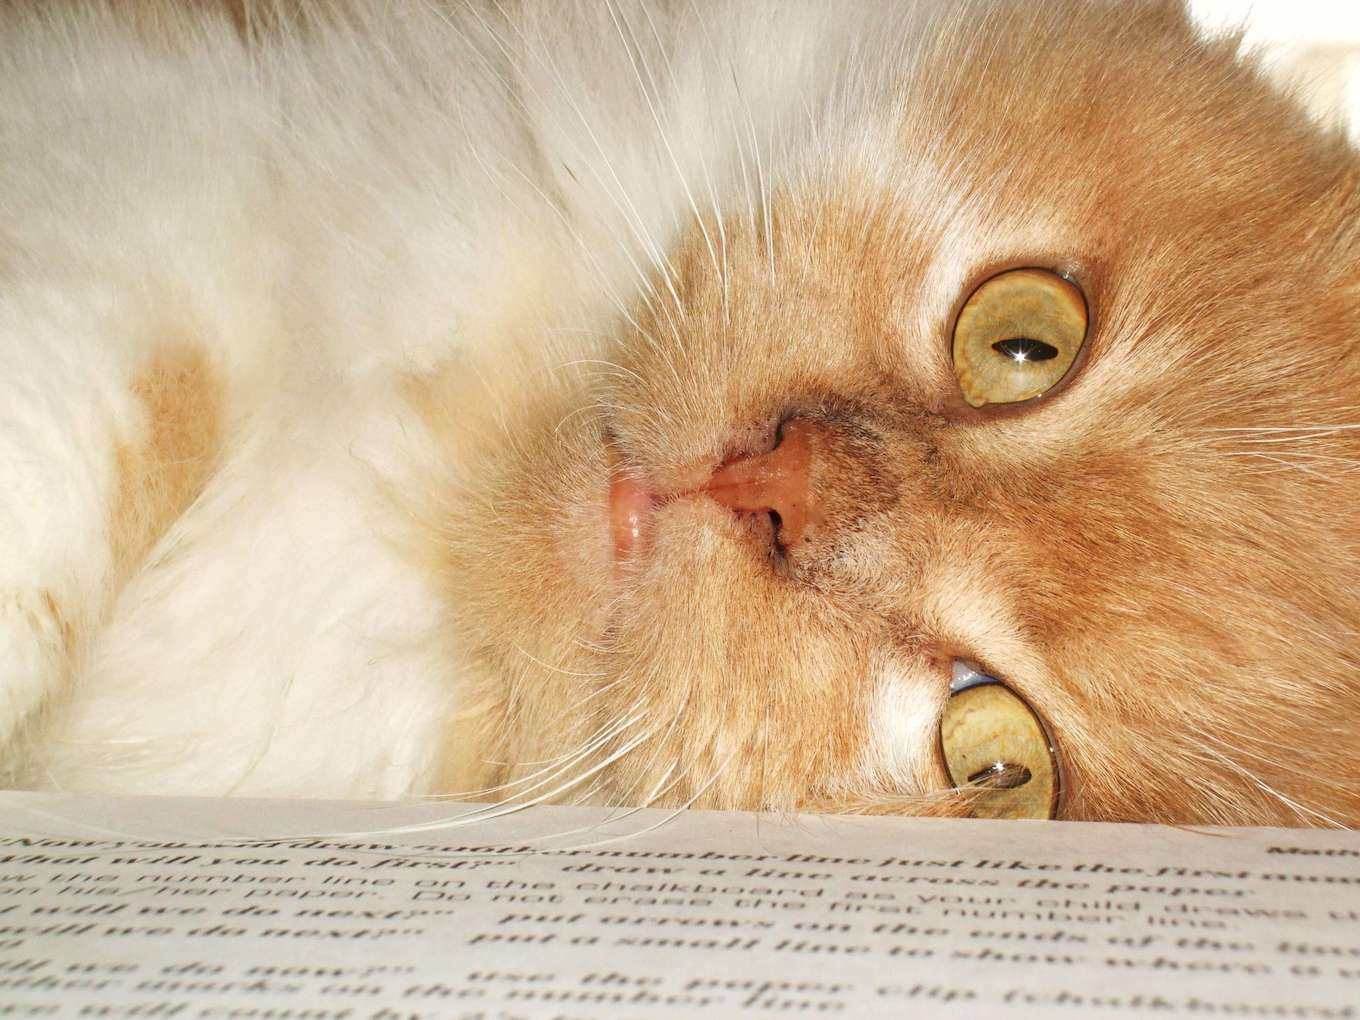 A close-up of an orange and white cat to demonstrate fill the frame in pet photography.